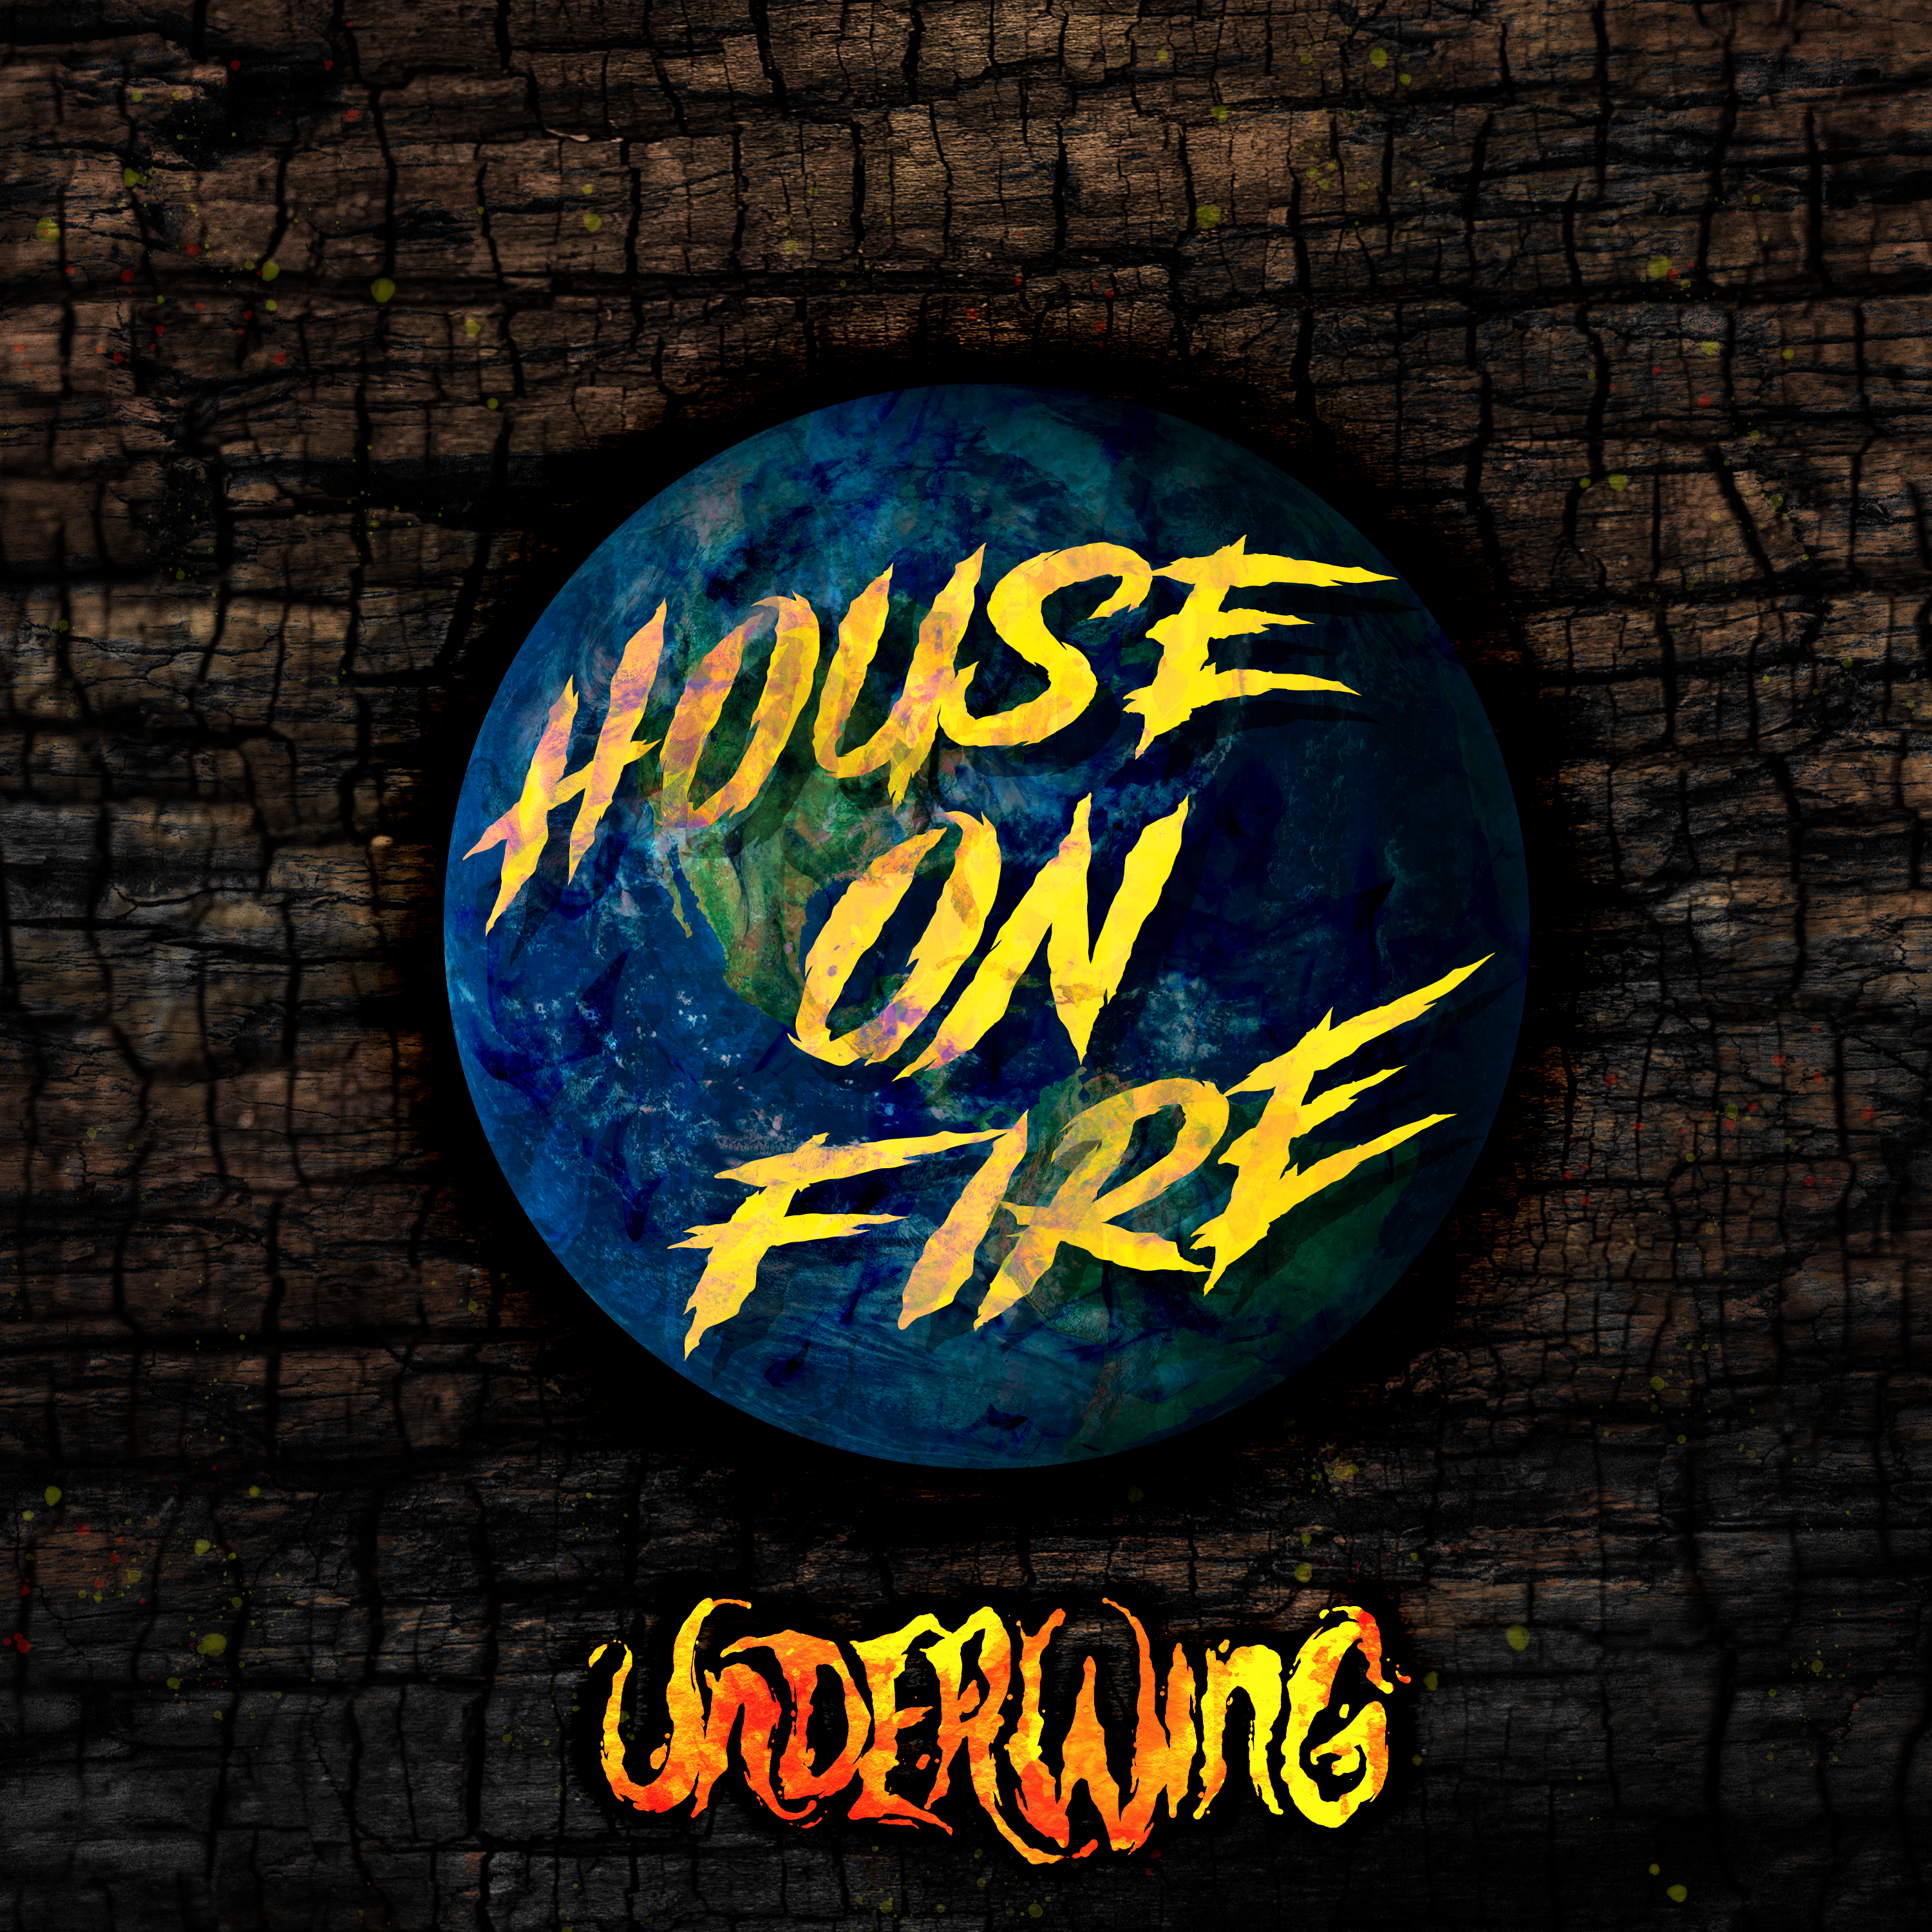 House on Fire artwork example 4